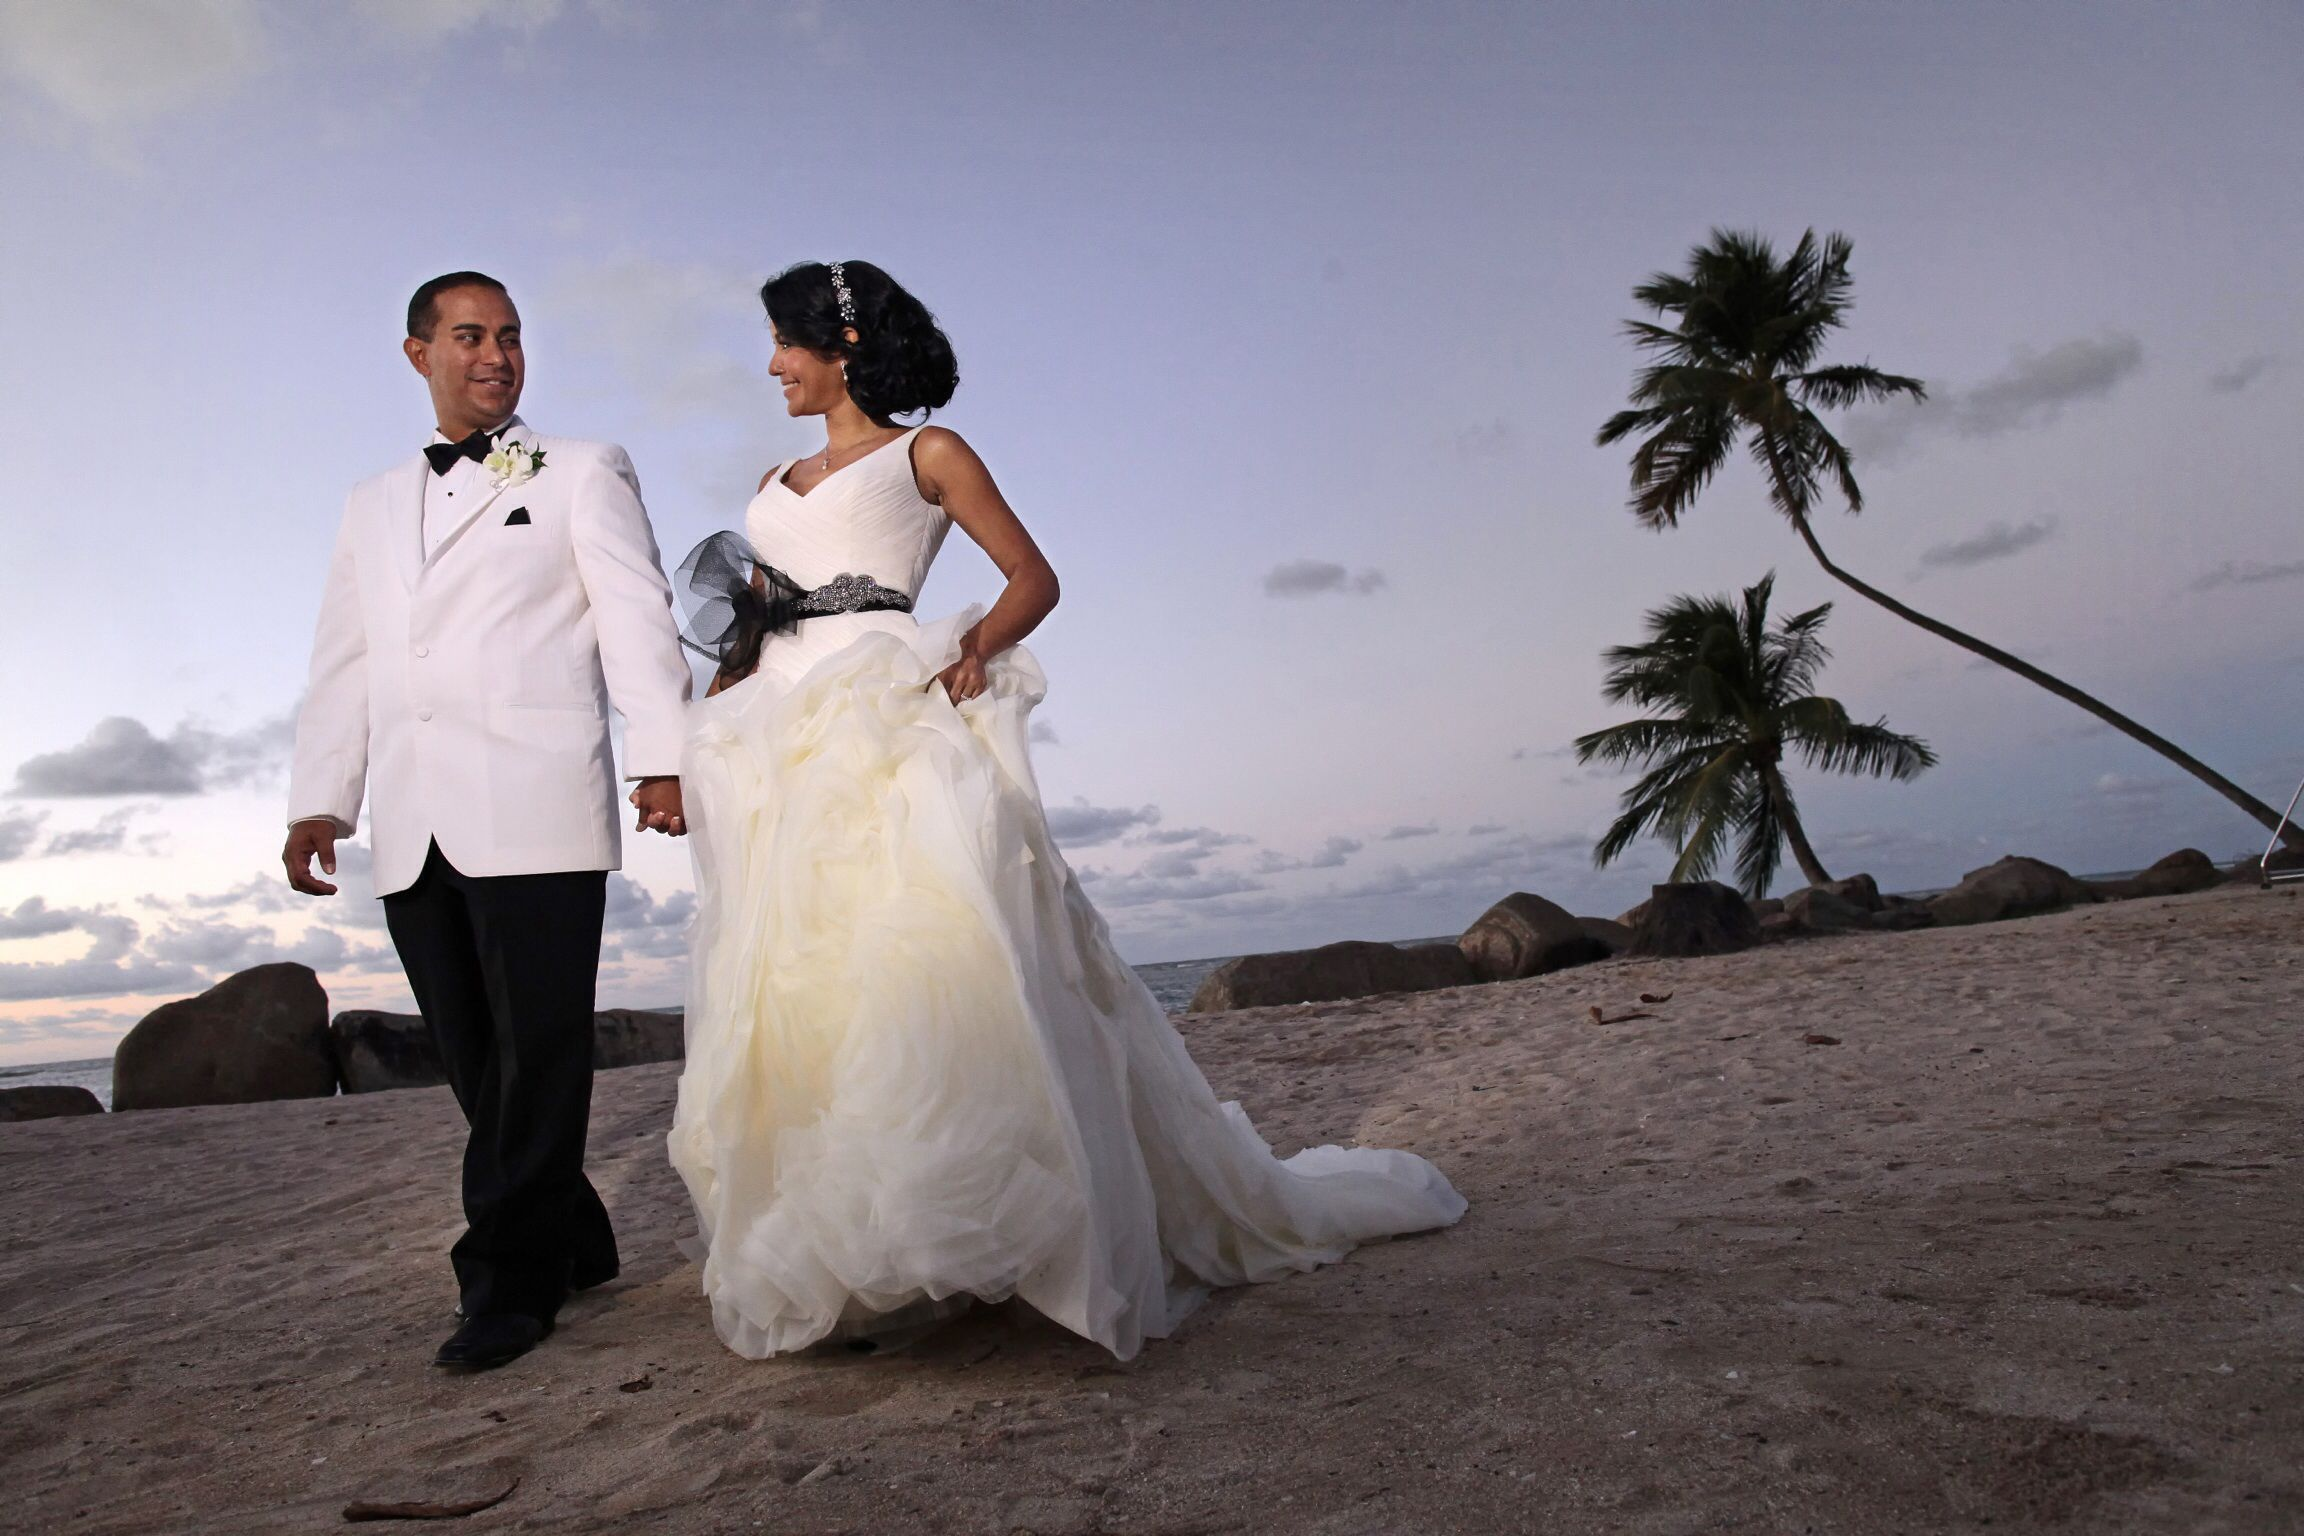 Caribbean wedding dress  Raymond Vega Photography raymondvegaphotography Wedding